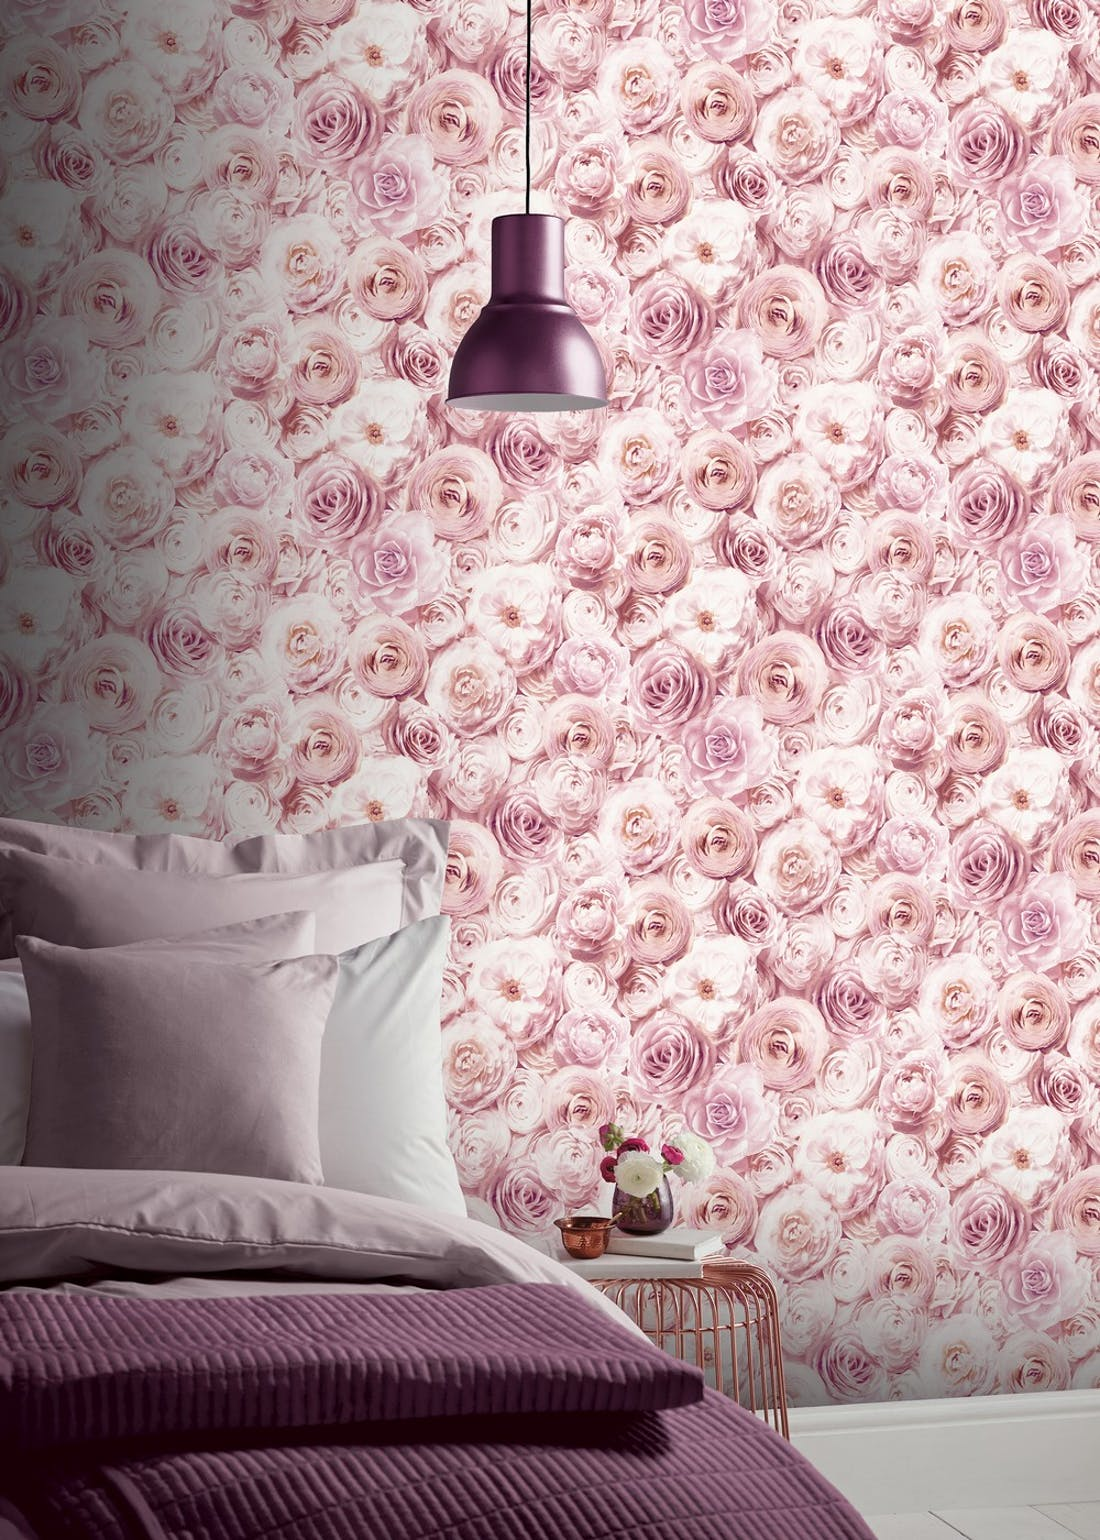 Arthouse Blush Pink Wild Rose Wallpaper (10.05m x 53cm)